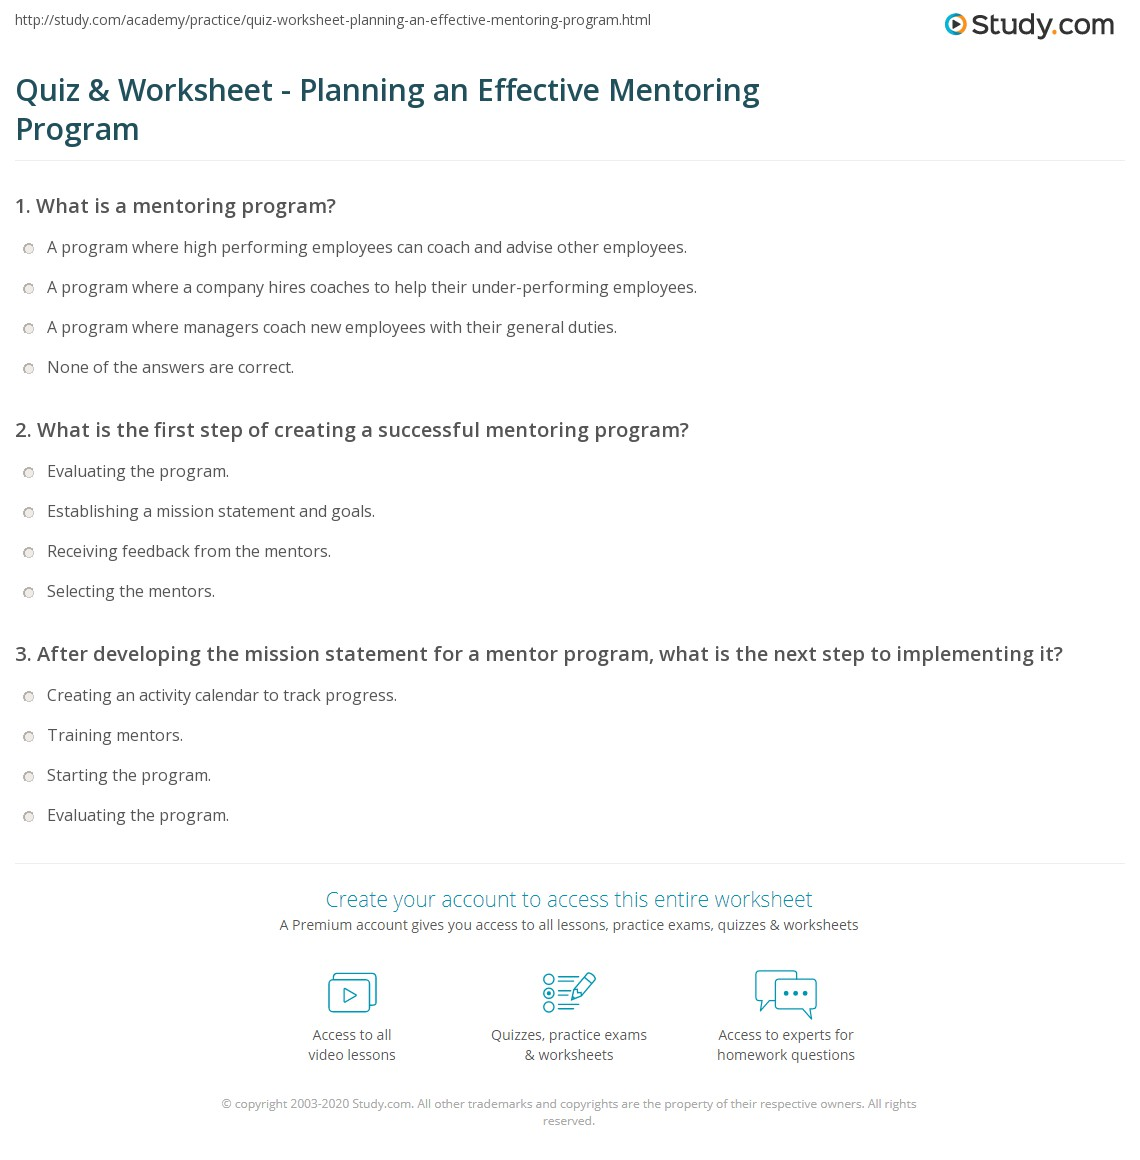 Worksheets Mentoring Worksheets quiz worksheet planning an effective mentoring program study com print how to design a successful worksheet